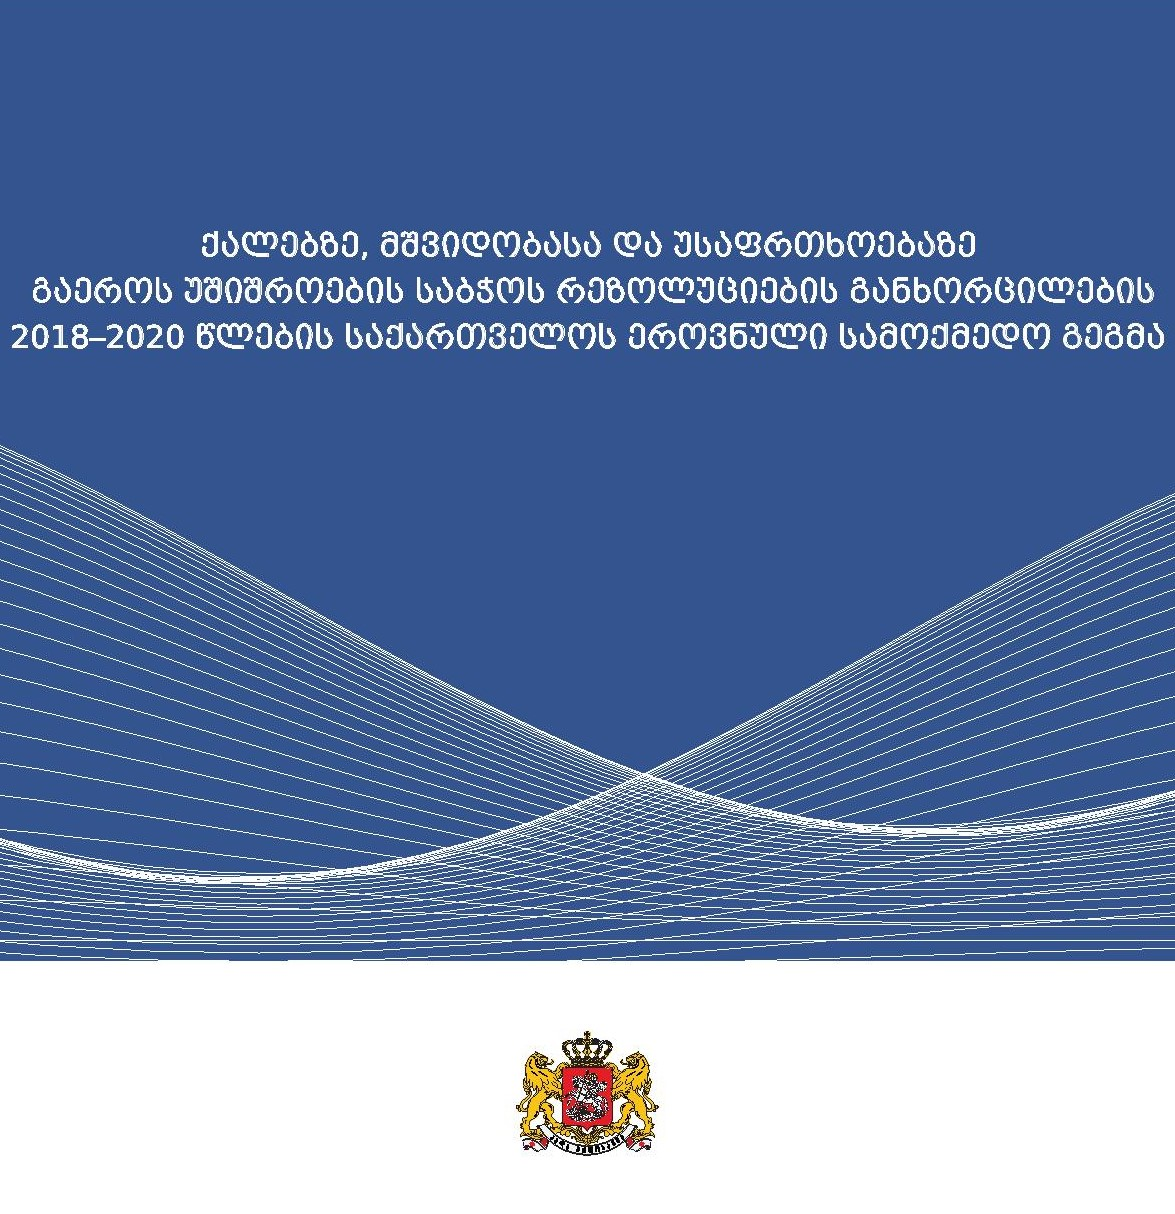 2018-2020 National Action Plan of Georgia for Implementation of the UN Security Council Resolutions on Women, Peace and Security